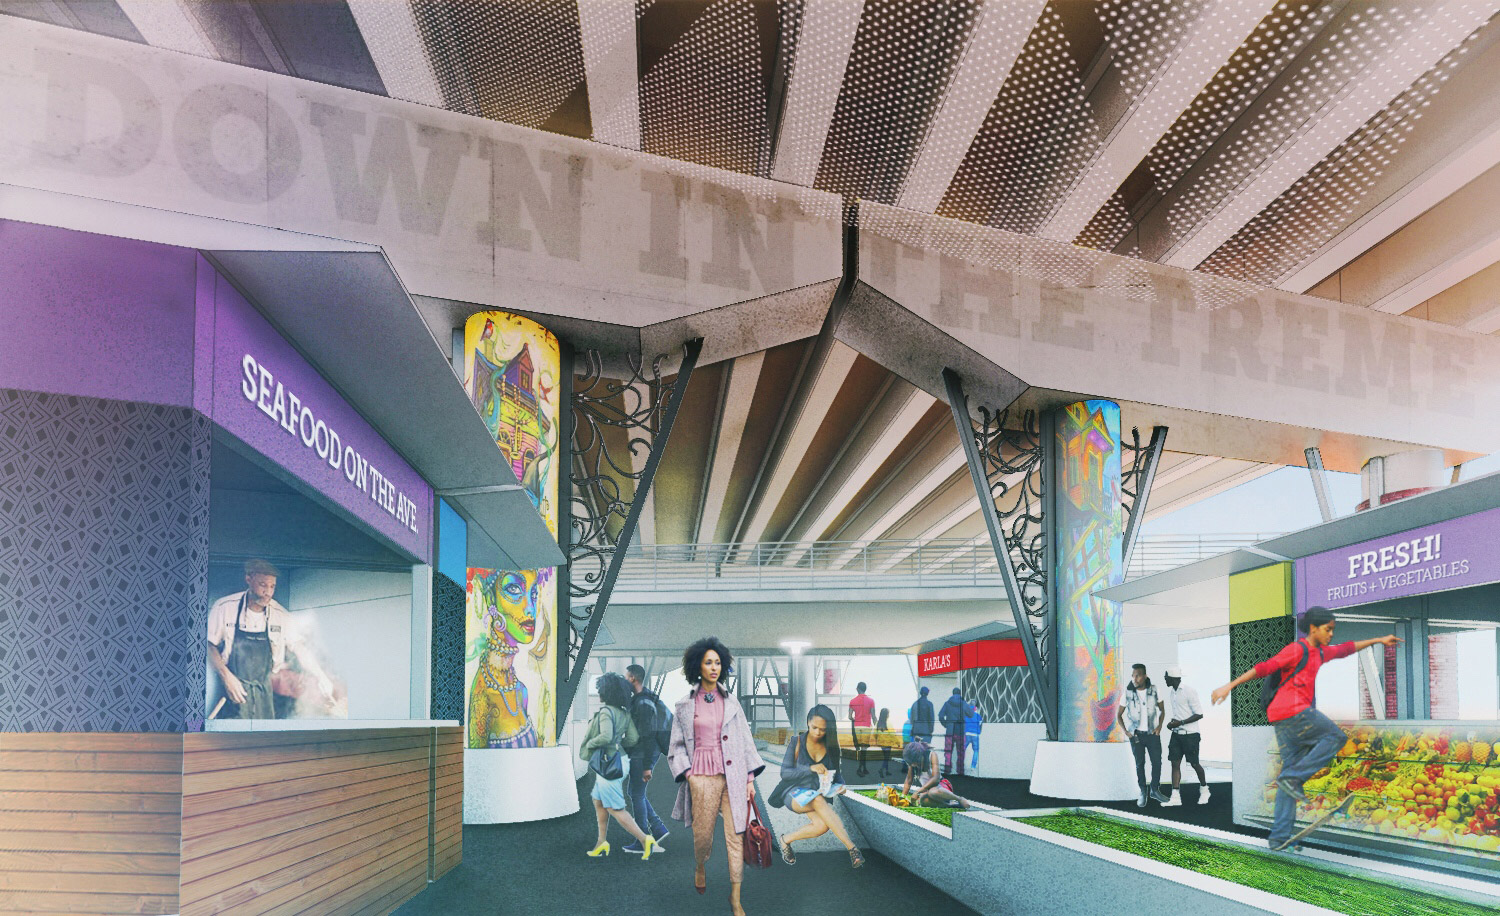 Rendering of a vibrant underpass